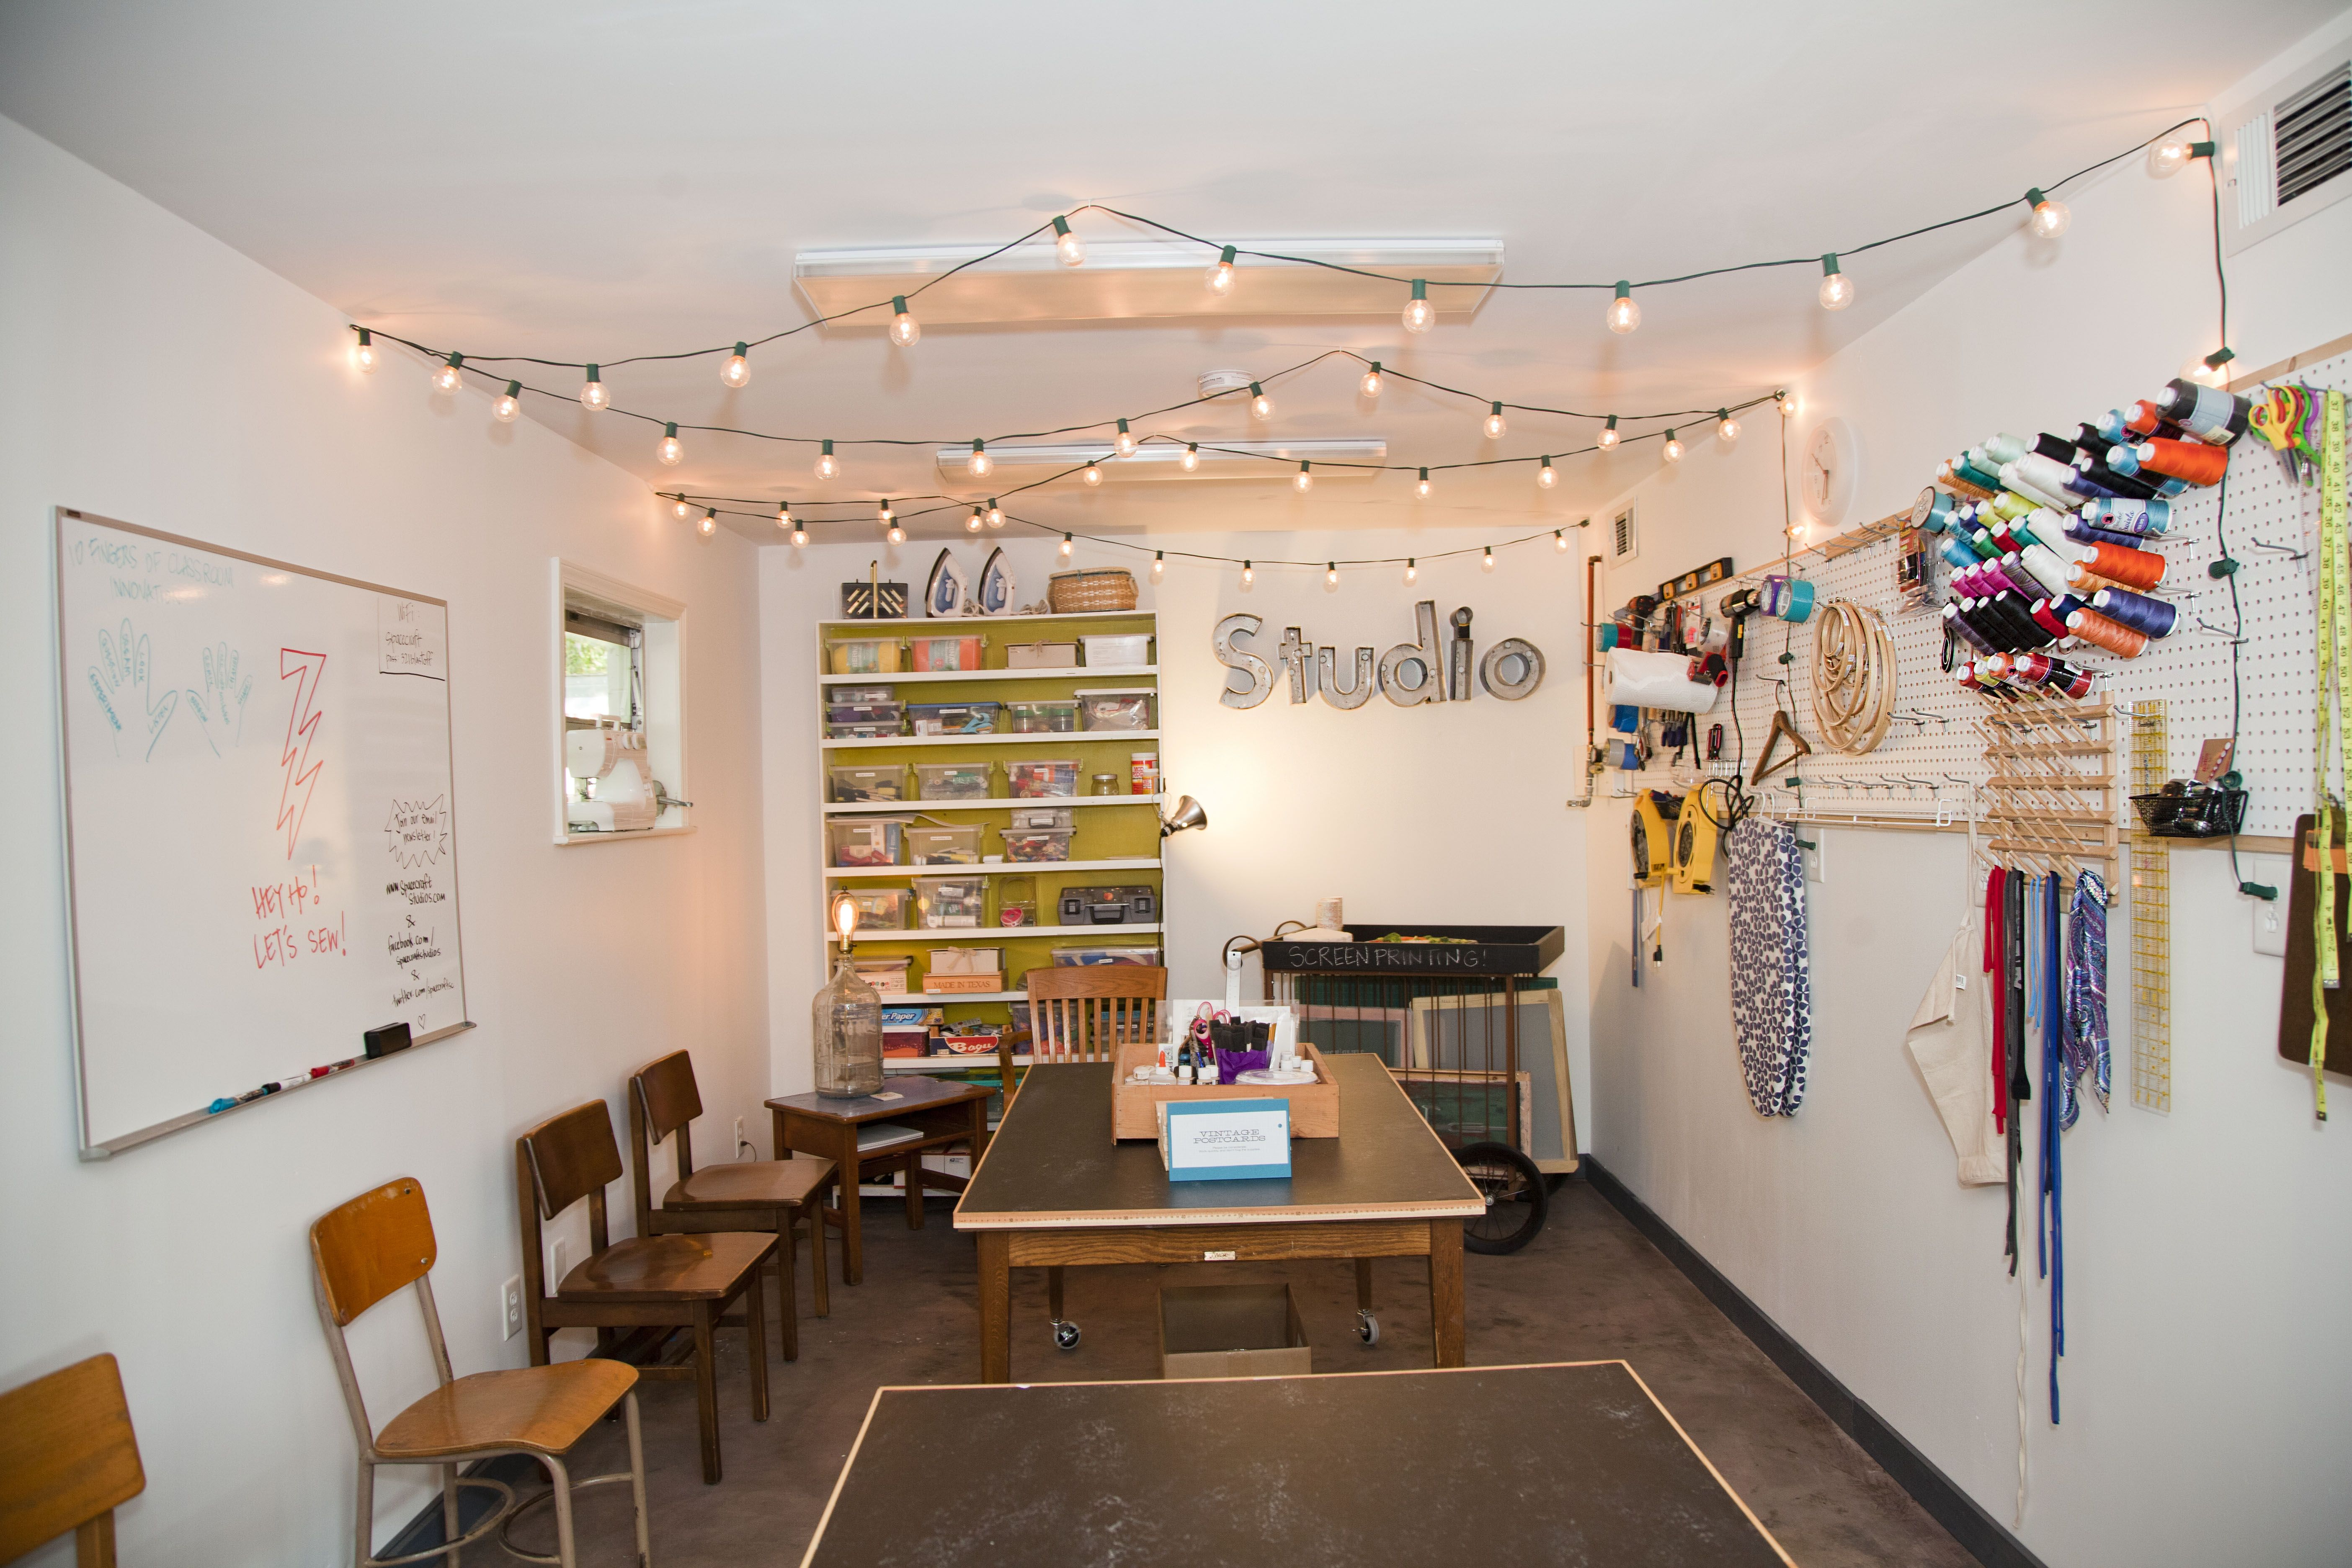 String Lights On Ceiling : string lights across ceiling Basement // Arts & Crafts Area Pinterest Crafts, Studios and On